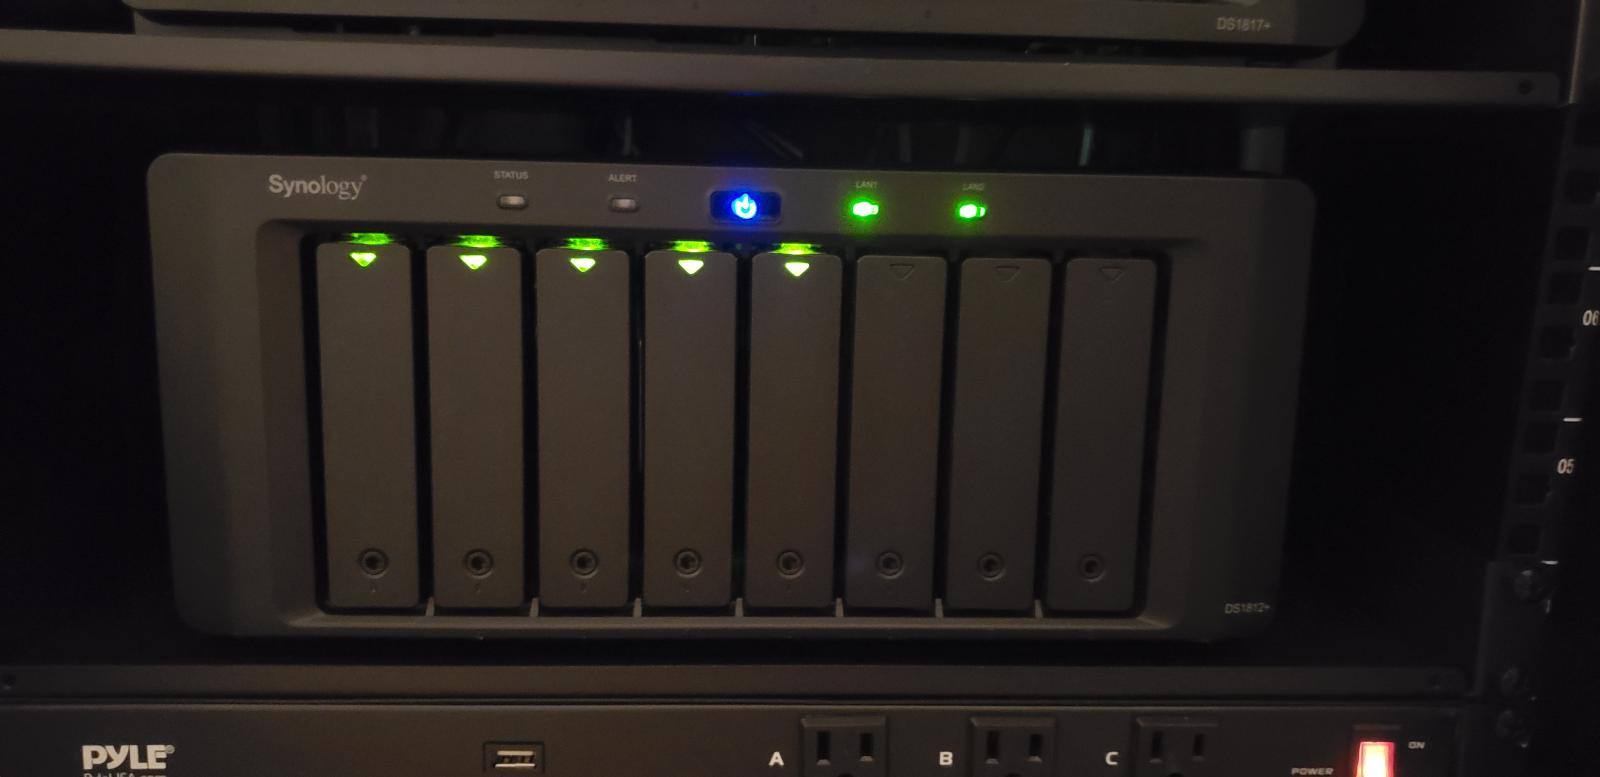 Photo of Synology DiskStation 1812+ 8-bay NAS appliance (3GB RAM)